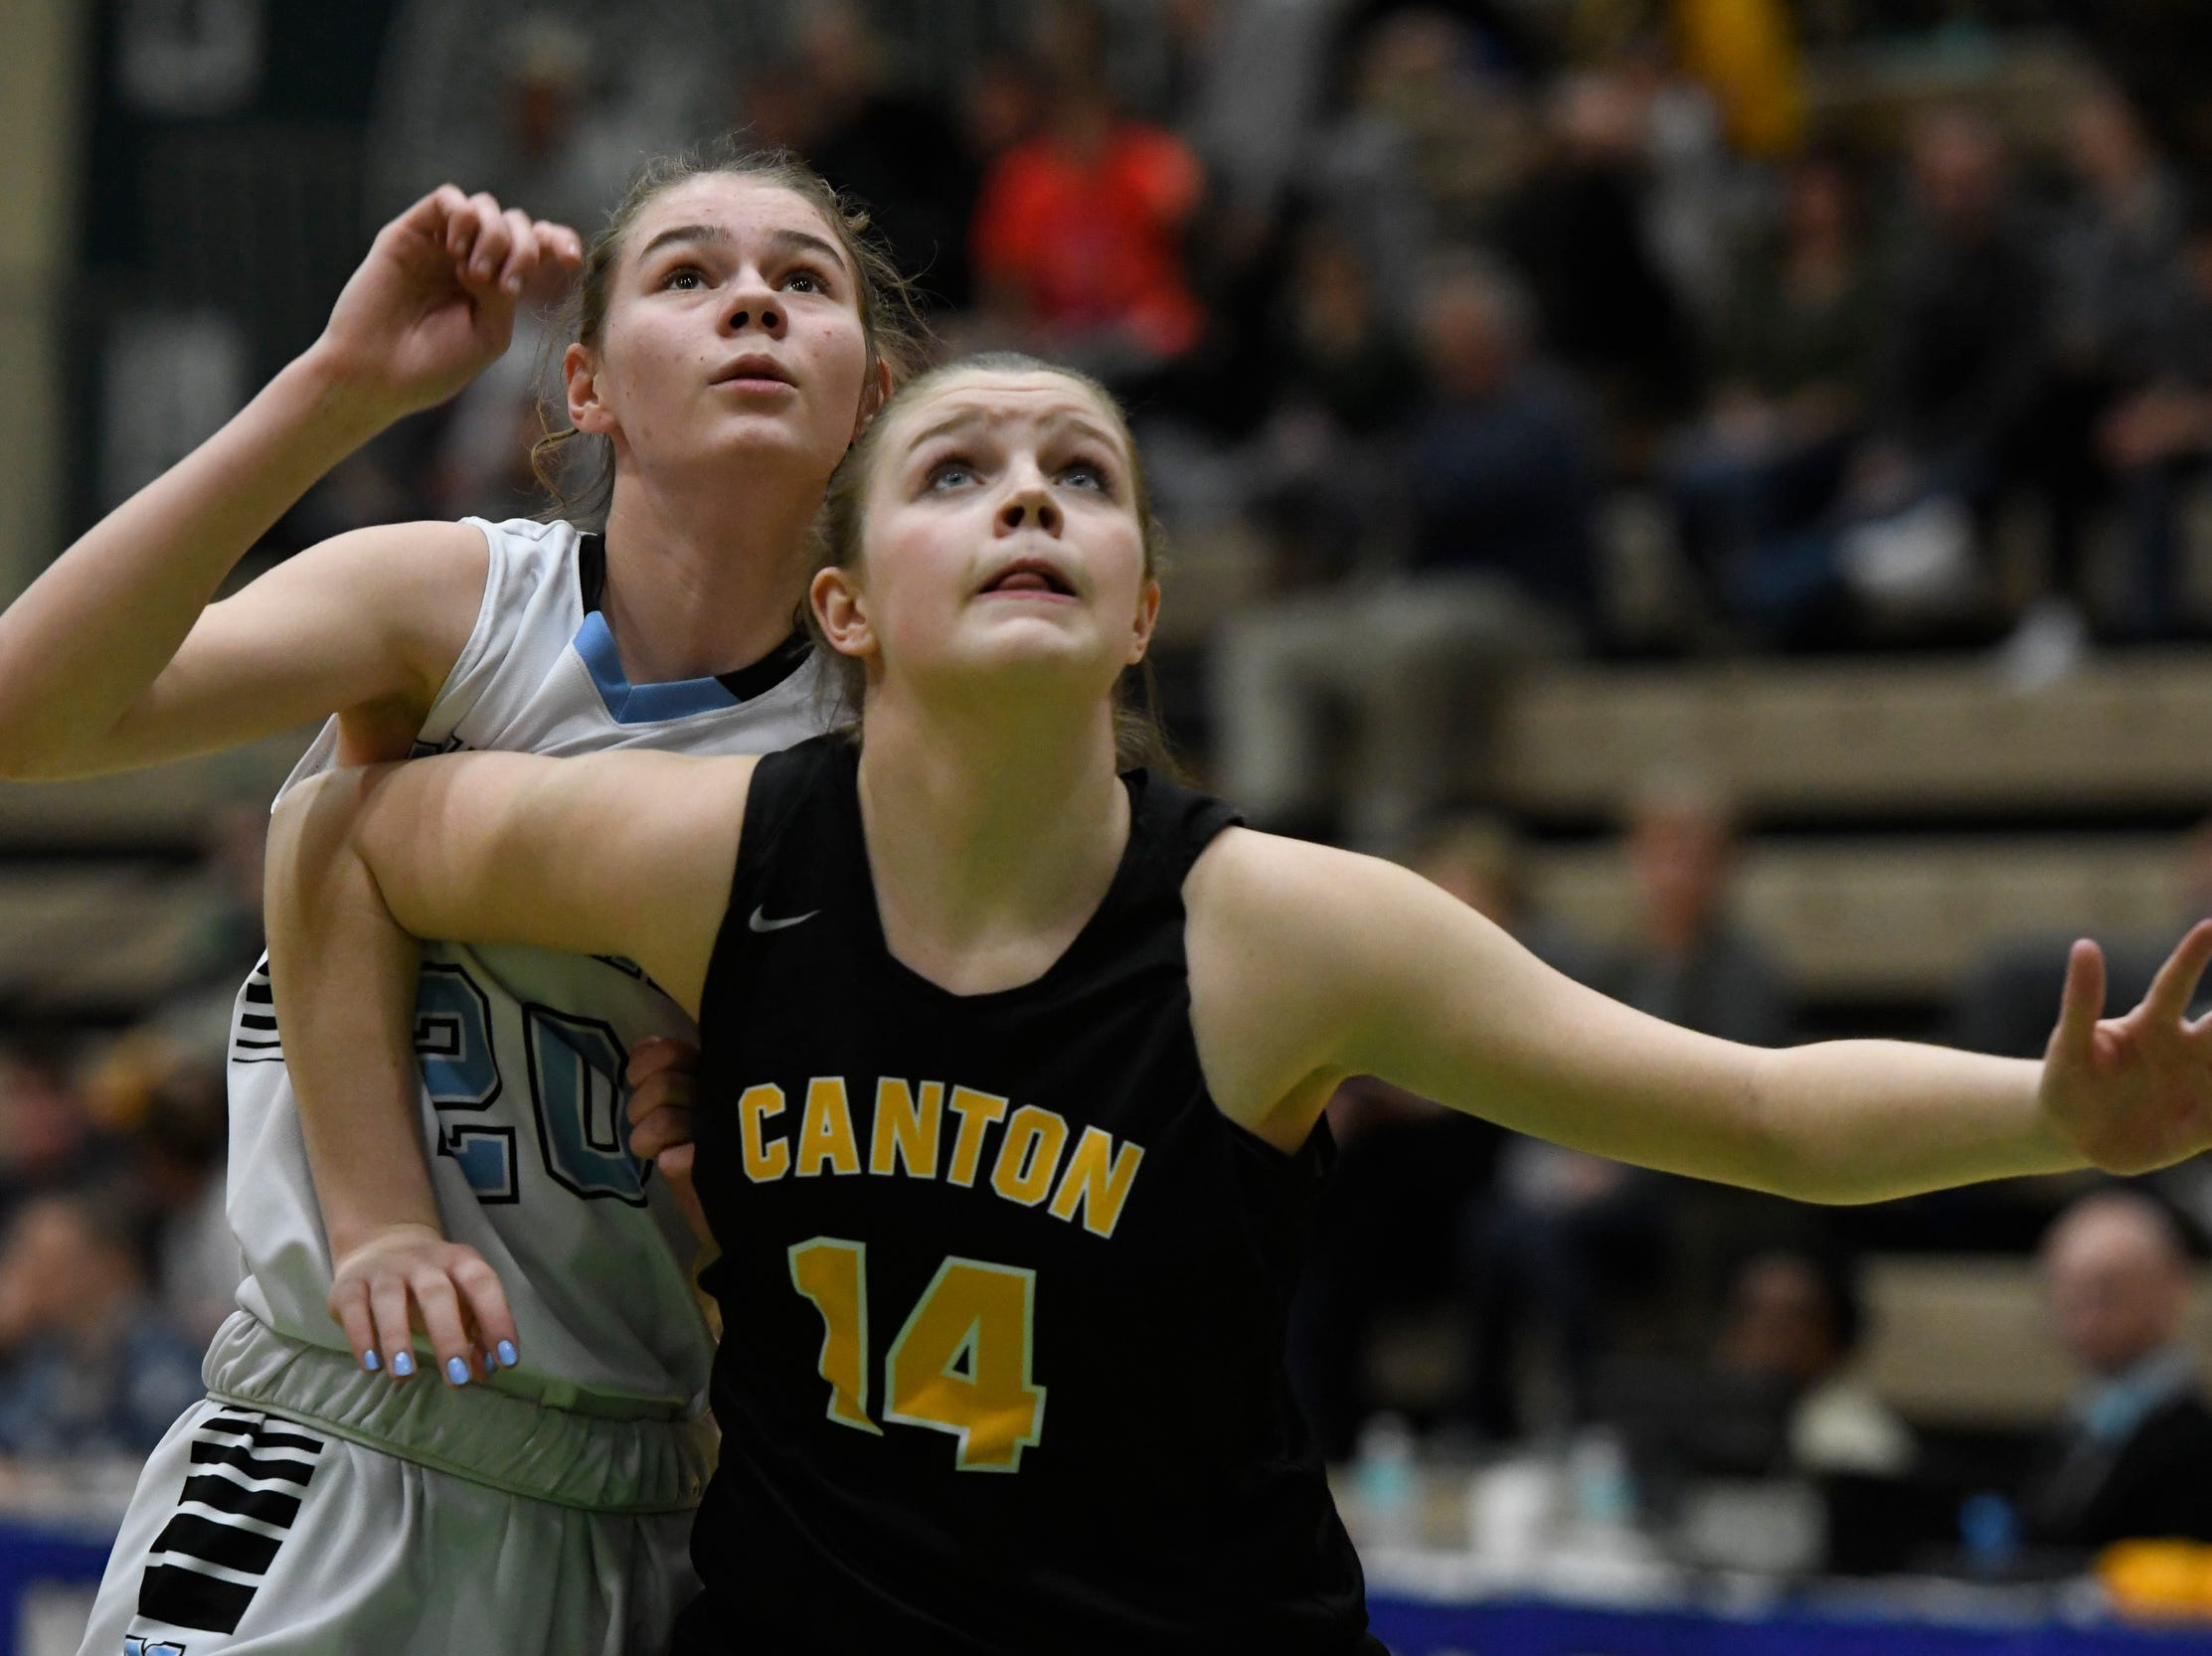 Midlakes's Callie Walker and Canton's Mary Lobdell battle for a rebound during their Class B State Semifinal at Hudson Valley Community College in Troy, N.Y. on Friday, Mar. 15, 2019.